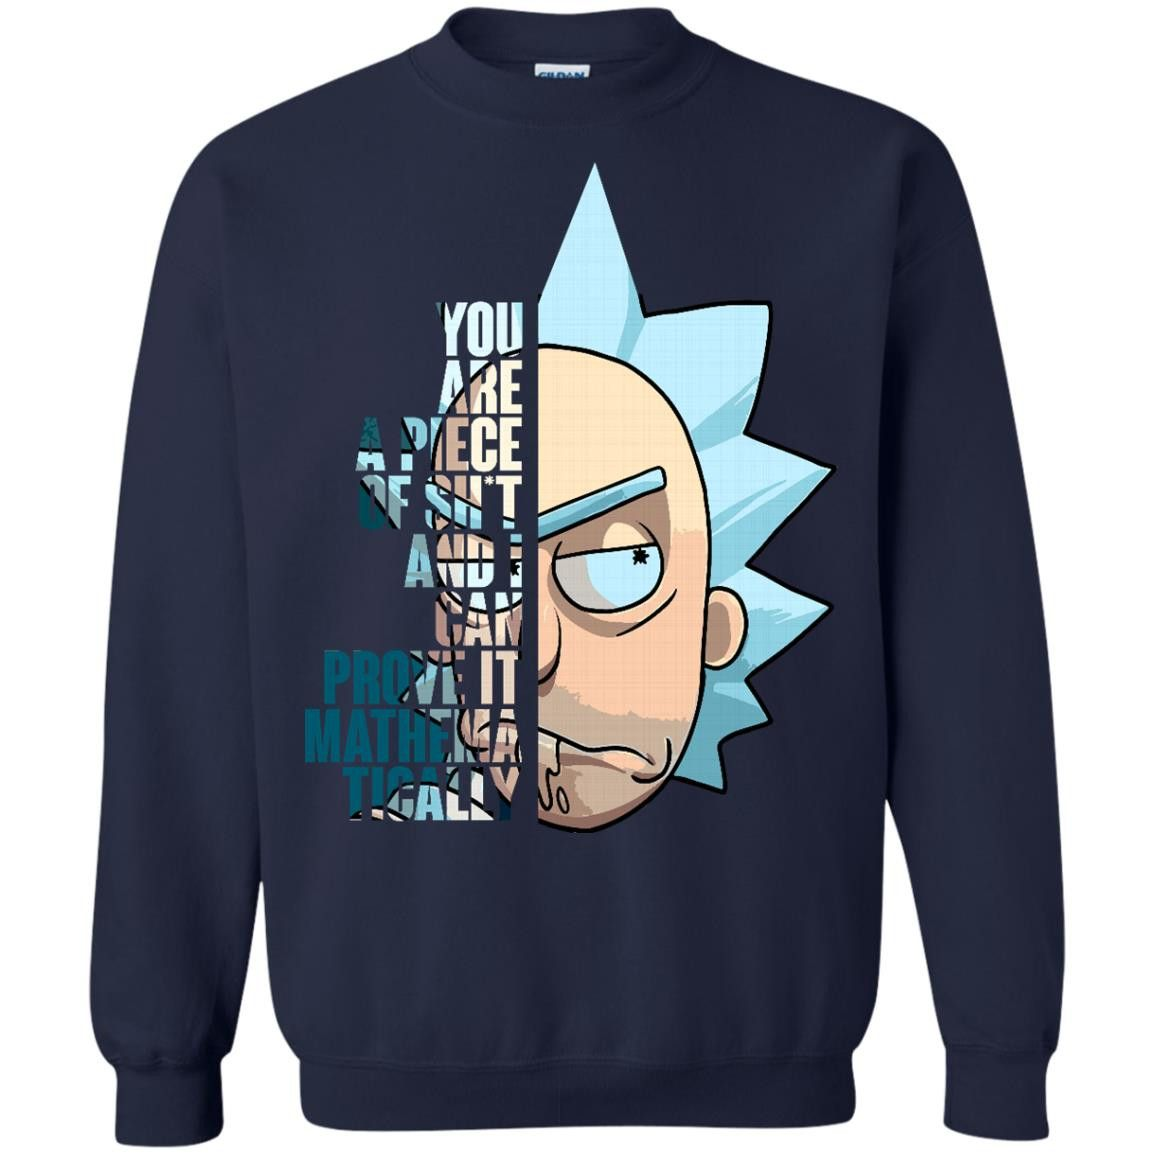 Are I Tshirts It Can Of Piece And Shit You Prove Morty A Rick xzwIZFEq